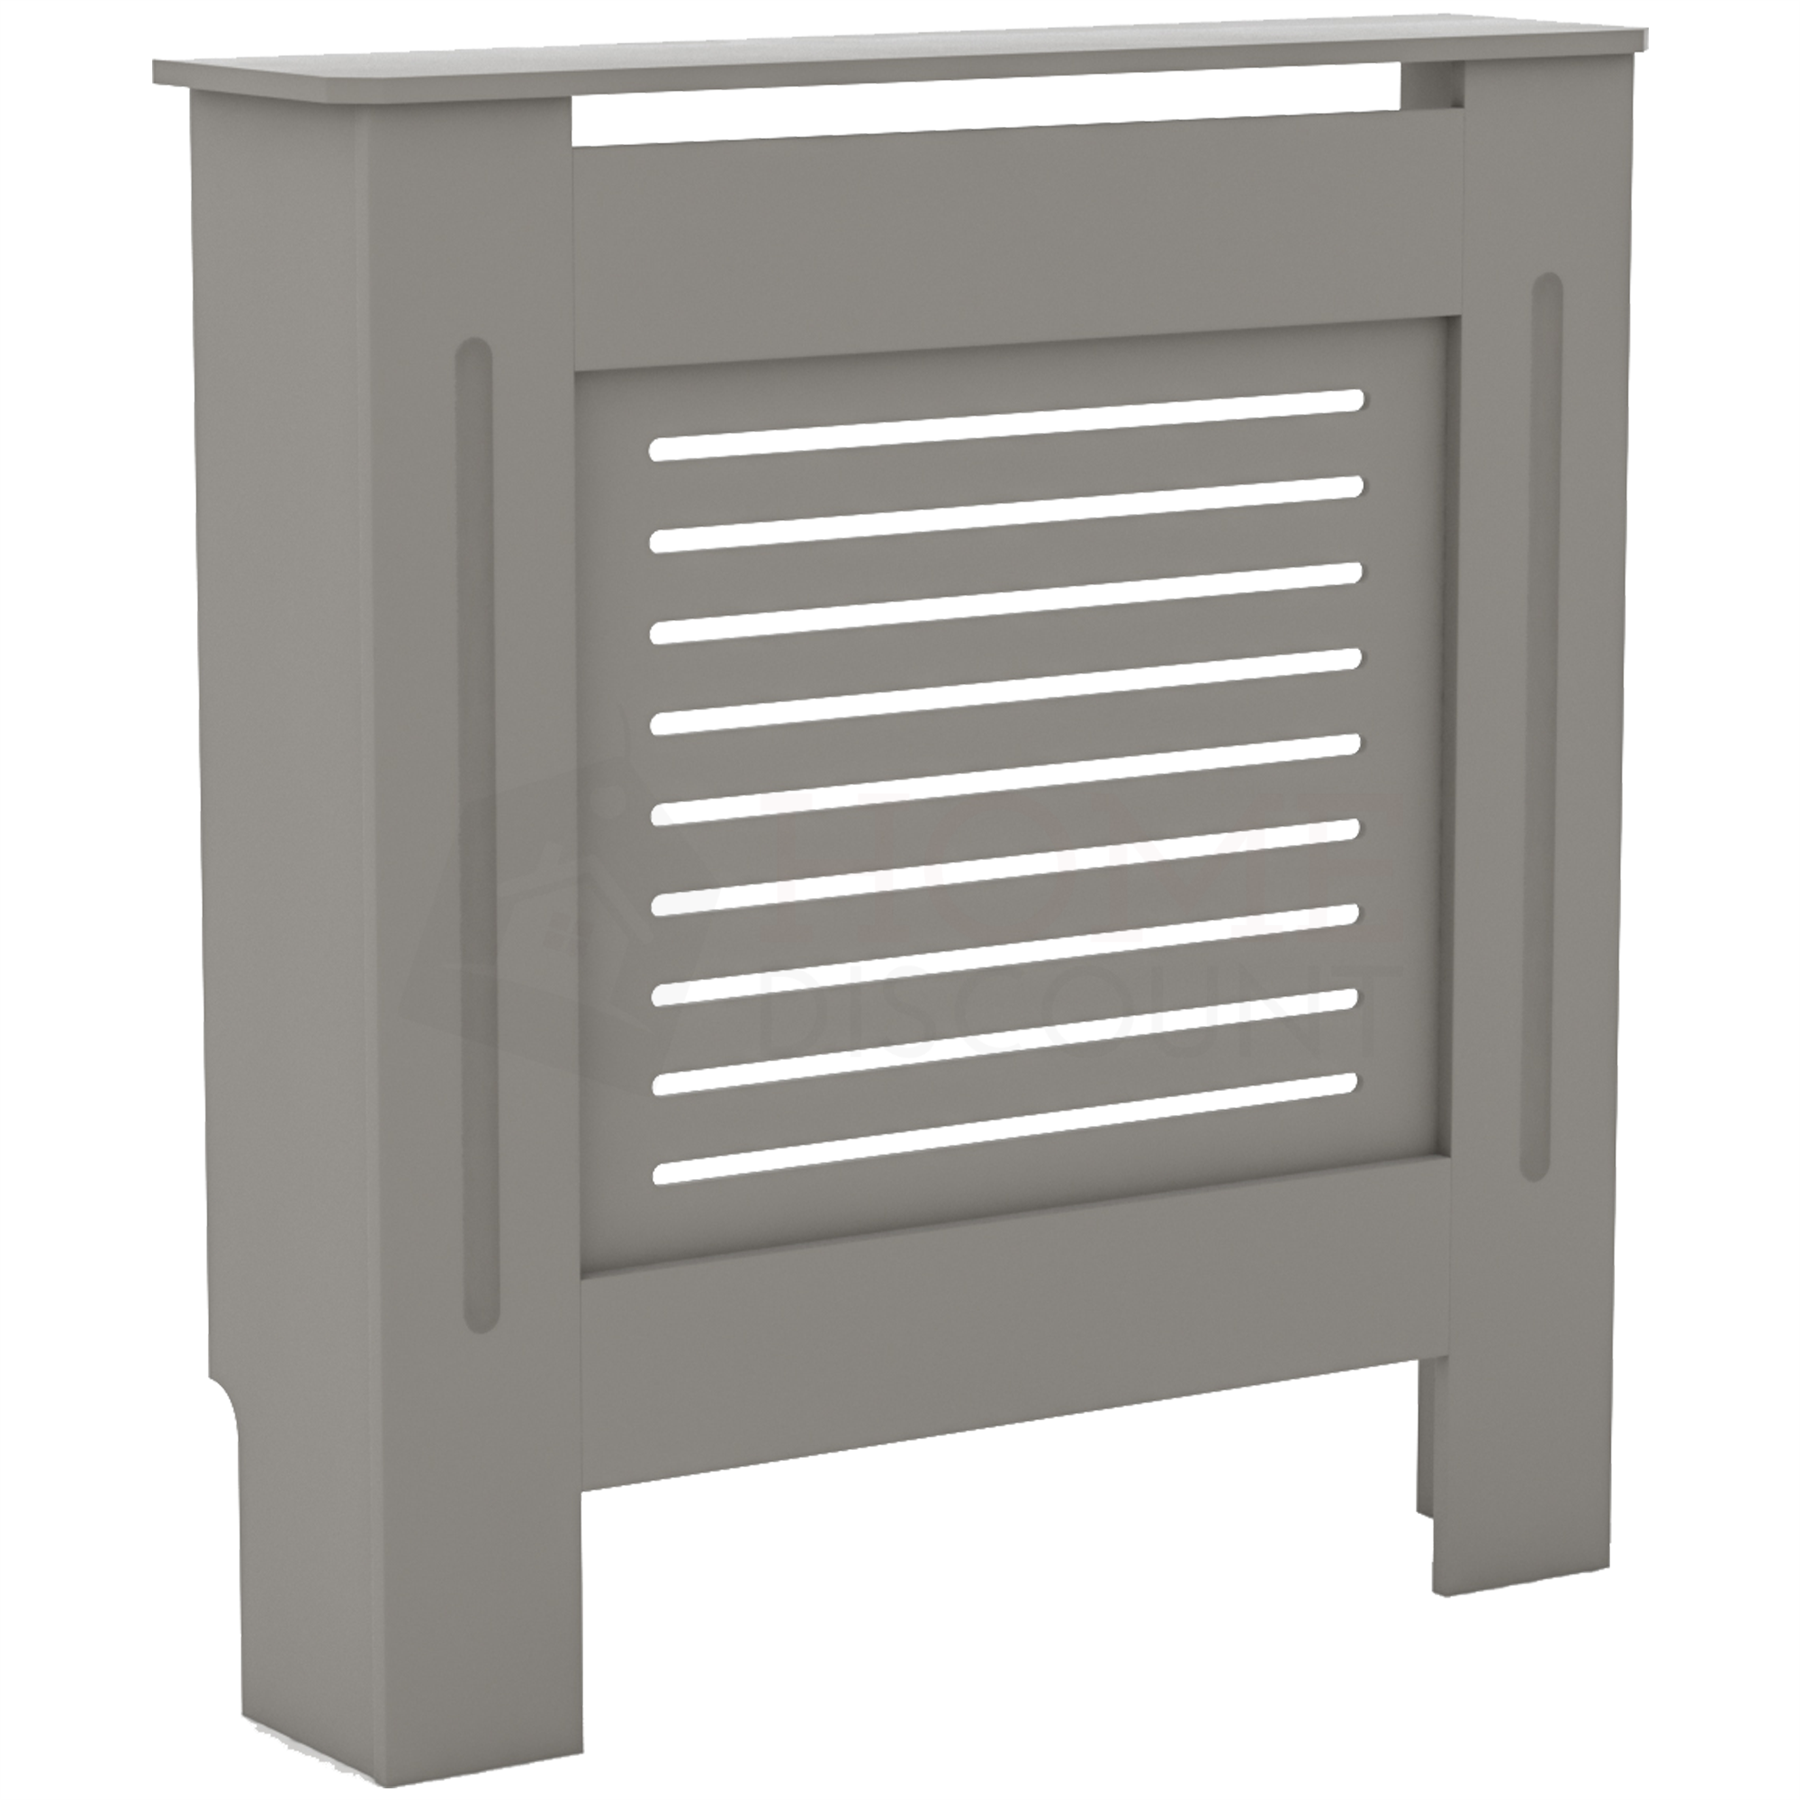 thumbnail 113 - Radiator Cover White Unfinished Modern Traditional Wood Grill Cabinet Furniture